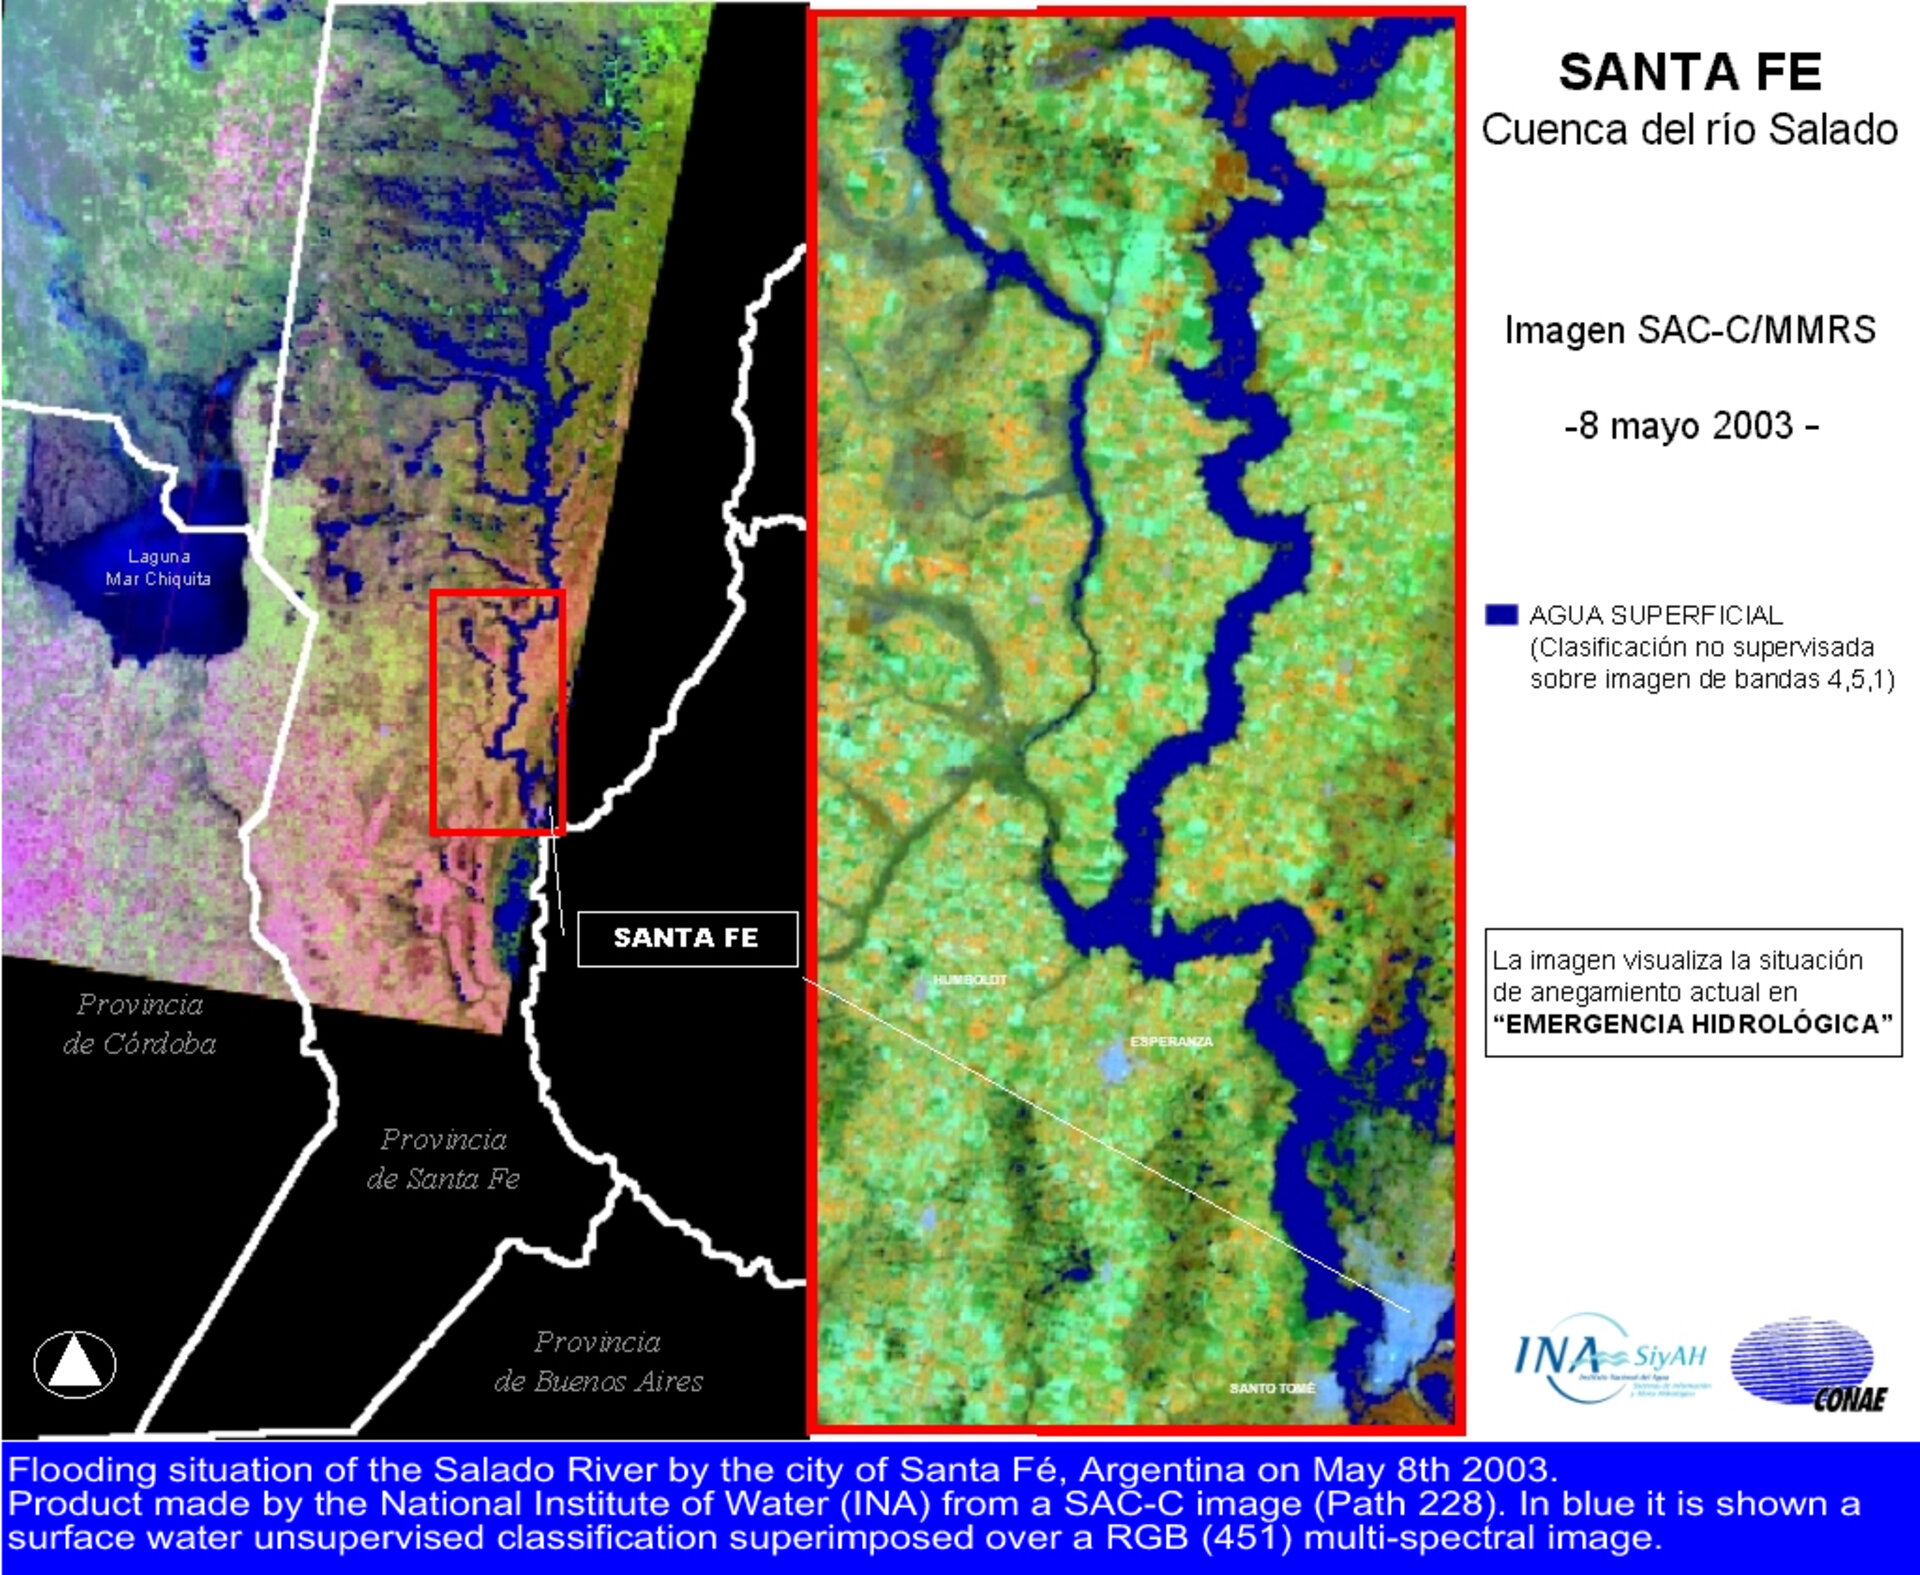 SAC-C imagery helps assess flood damage in Santa Fe city